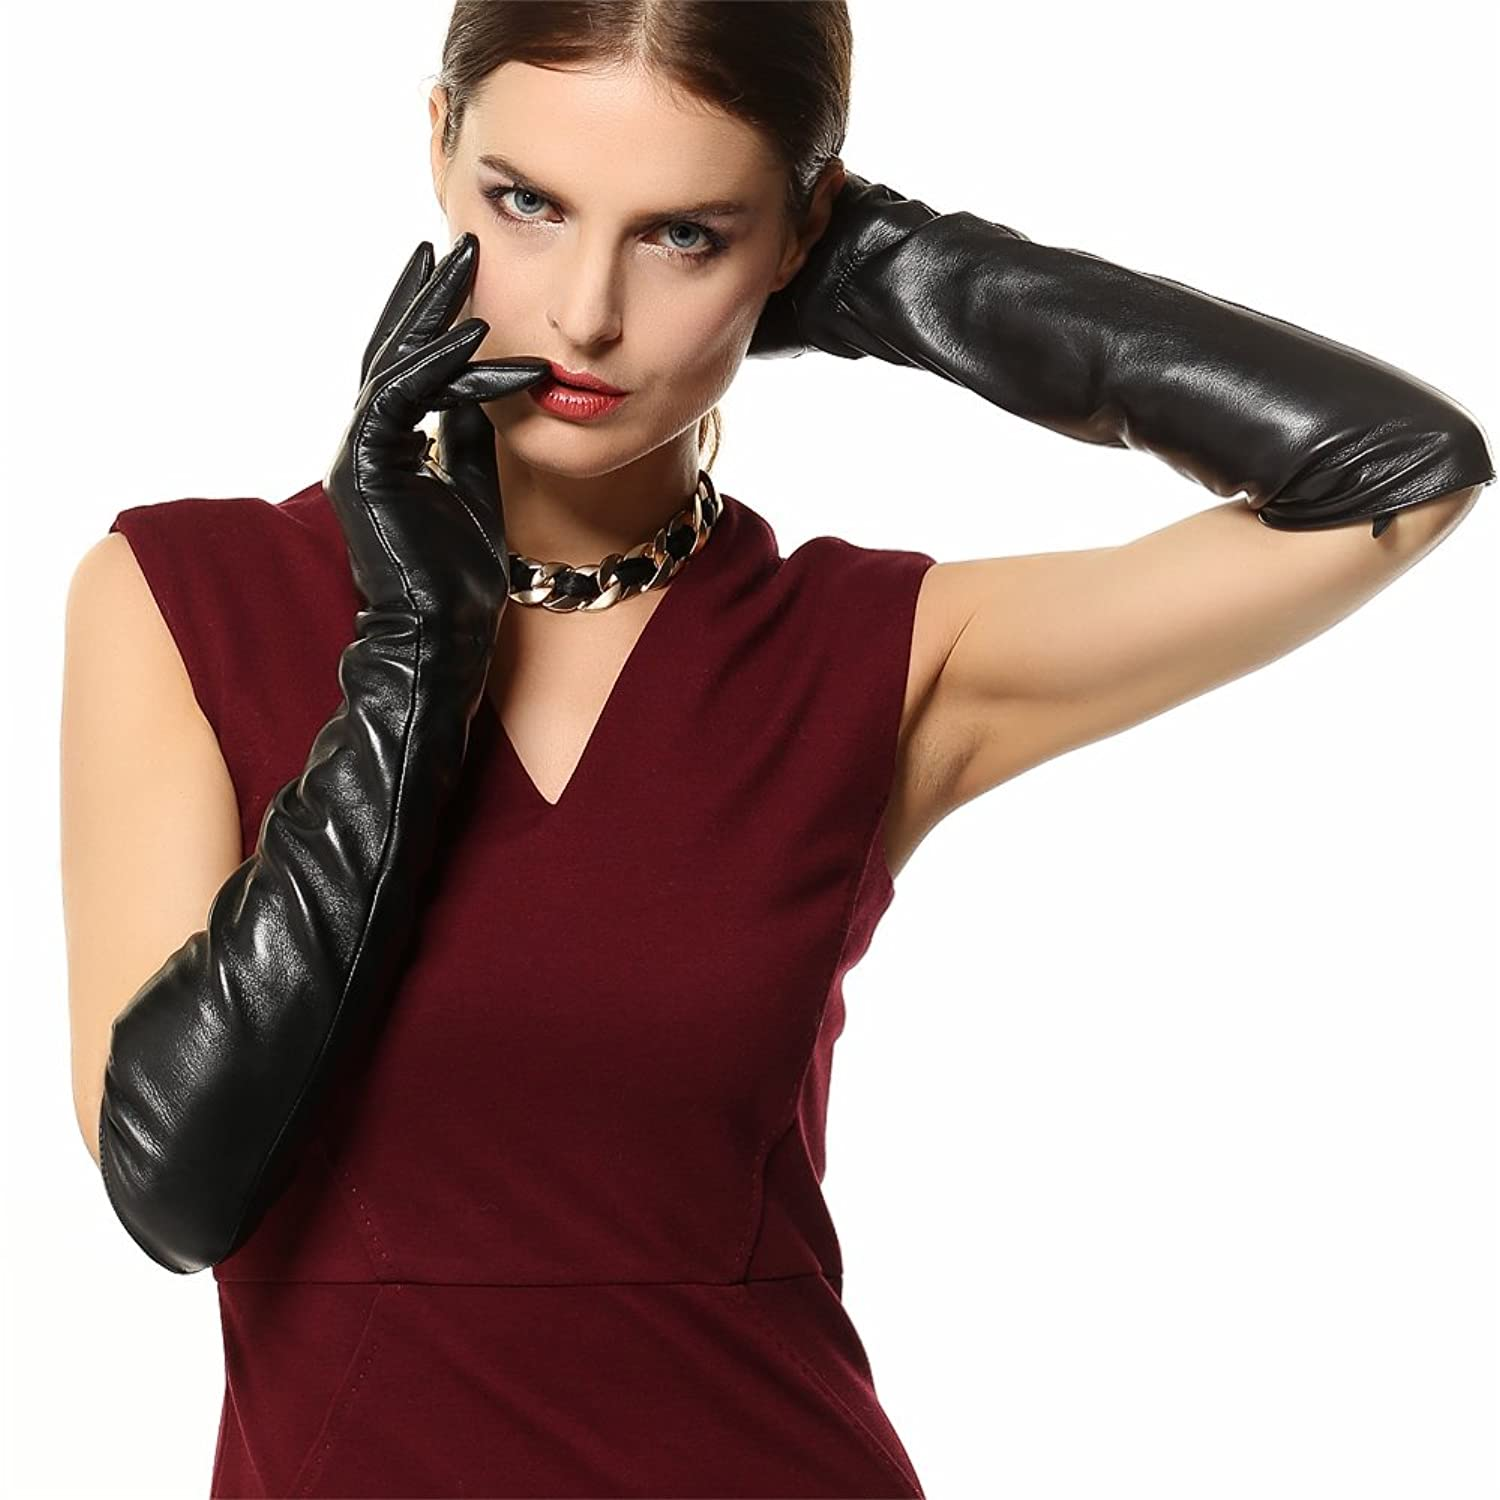 Best womens leather gloves - Warmen Ladies Opera Long Genuine Soft Nappa Leather Gloves Black 6 5 Black Touchscreen Function At Amazon Women S Clothing Store